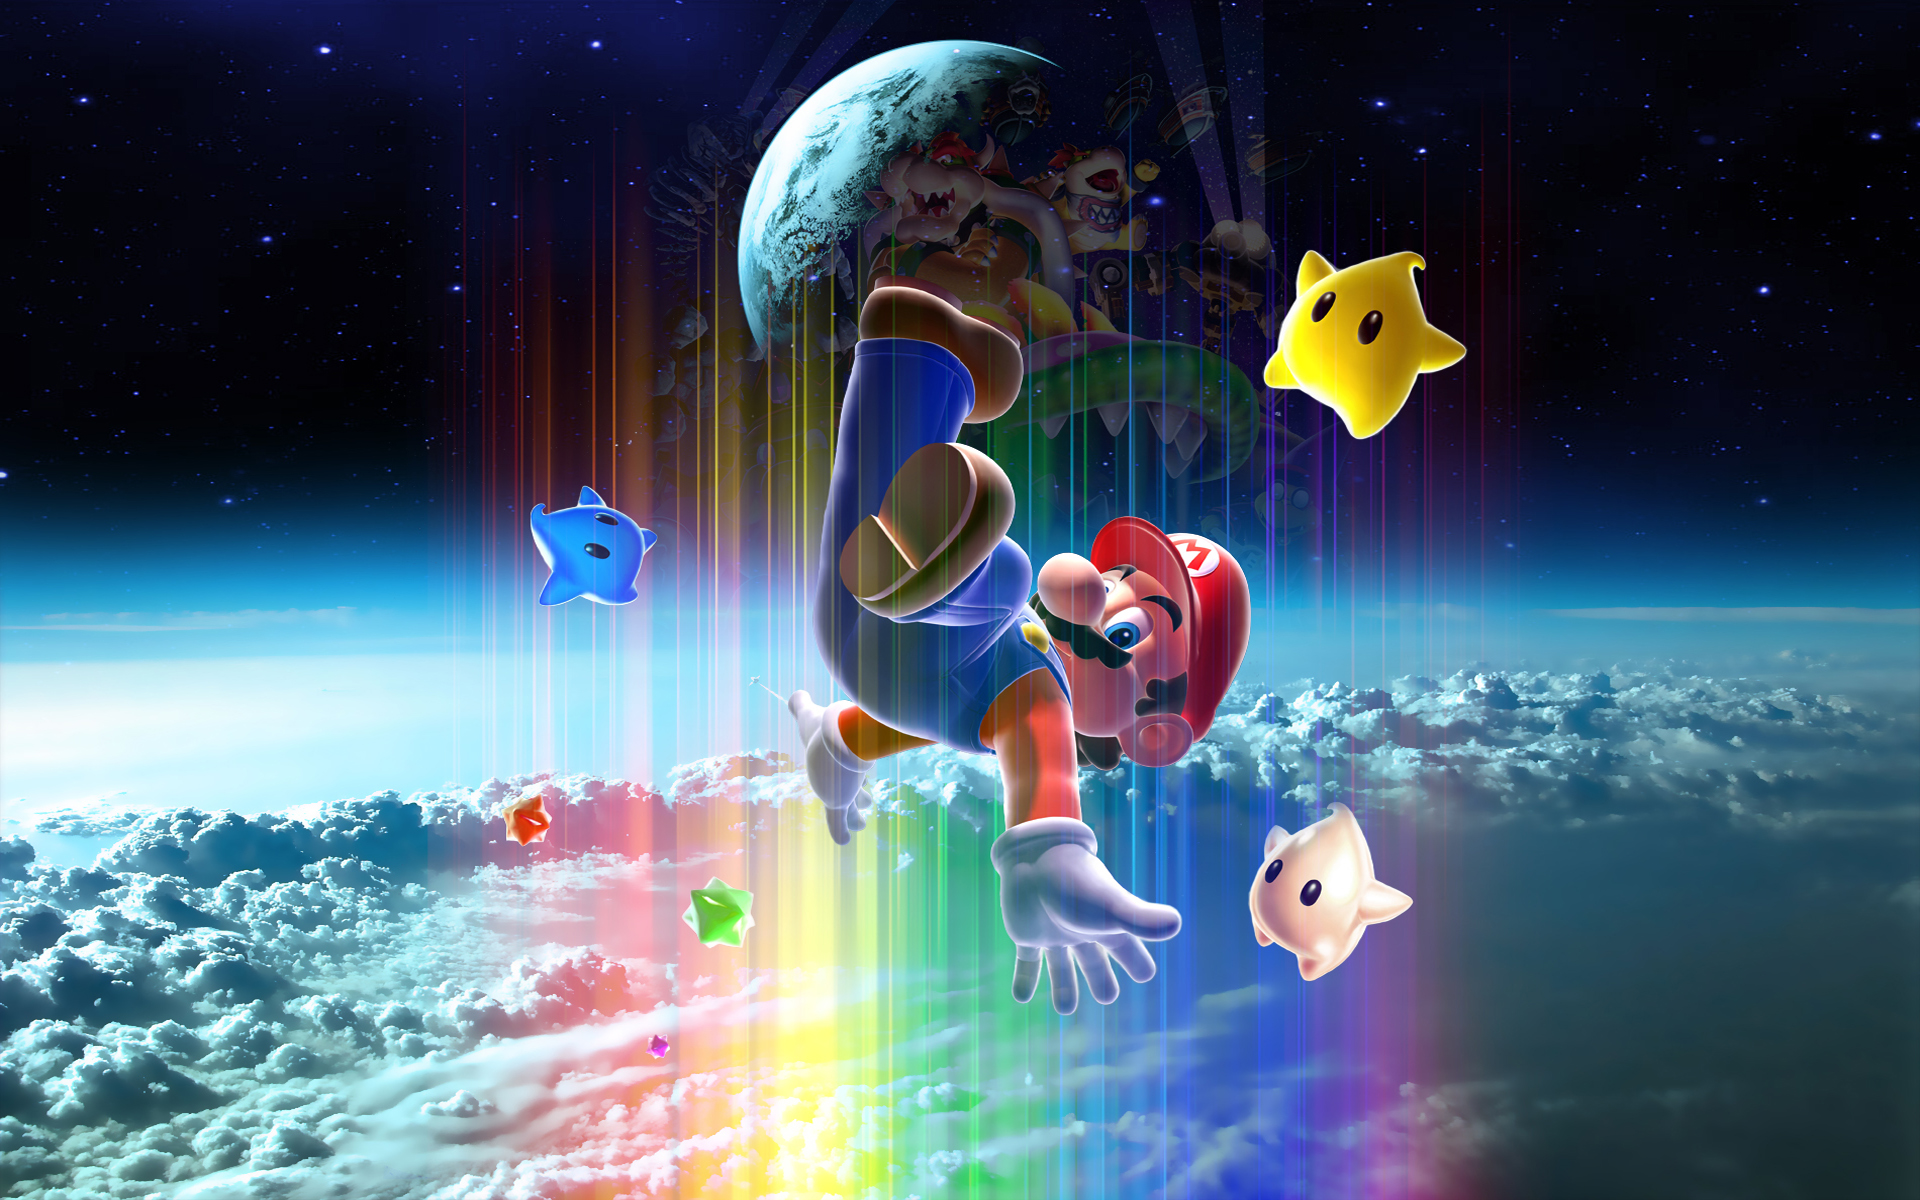 Super-mario-galaxy-nintendo-wii-games-wallpaper-HD